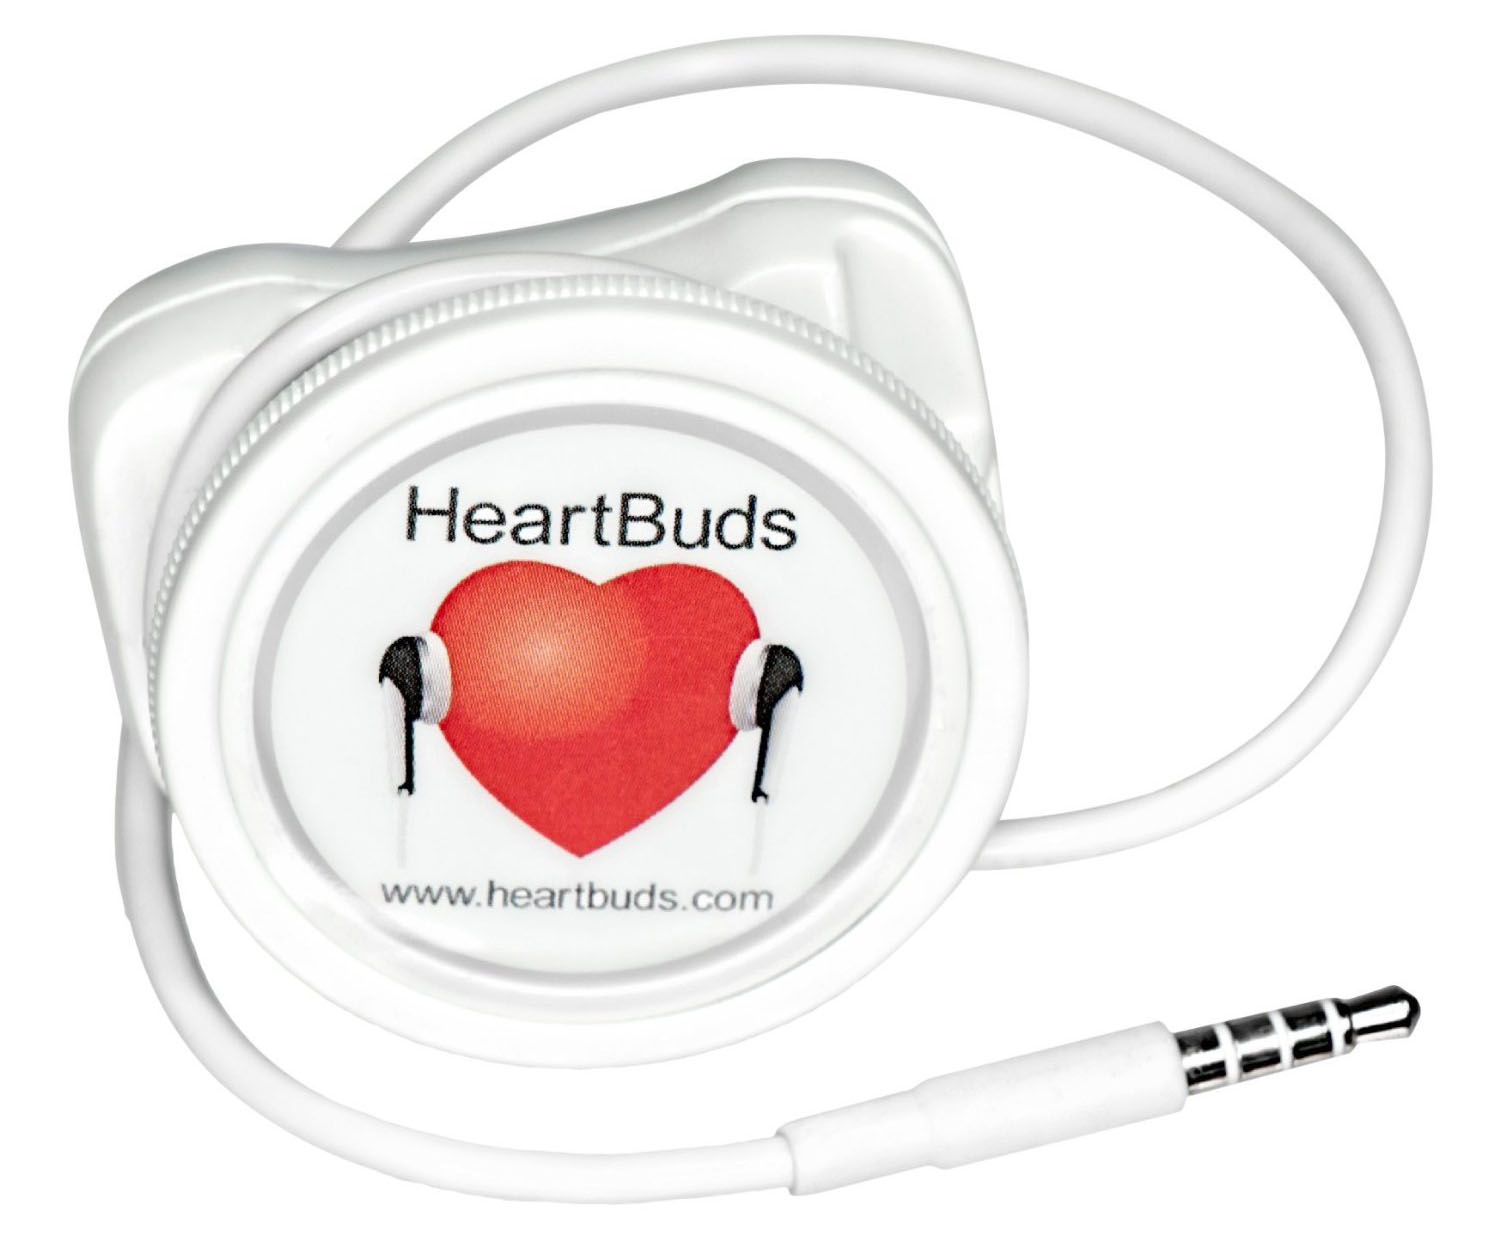 HeartBuds dispositivo